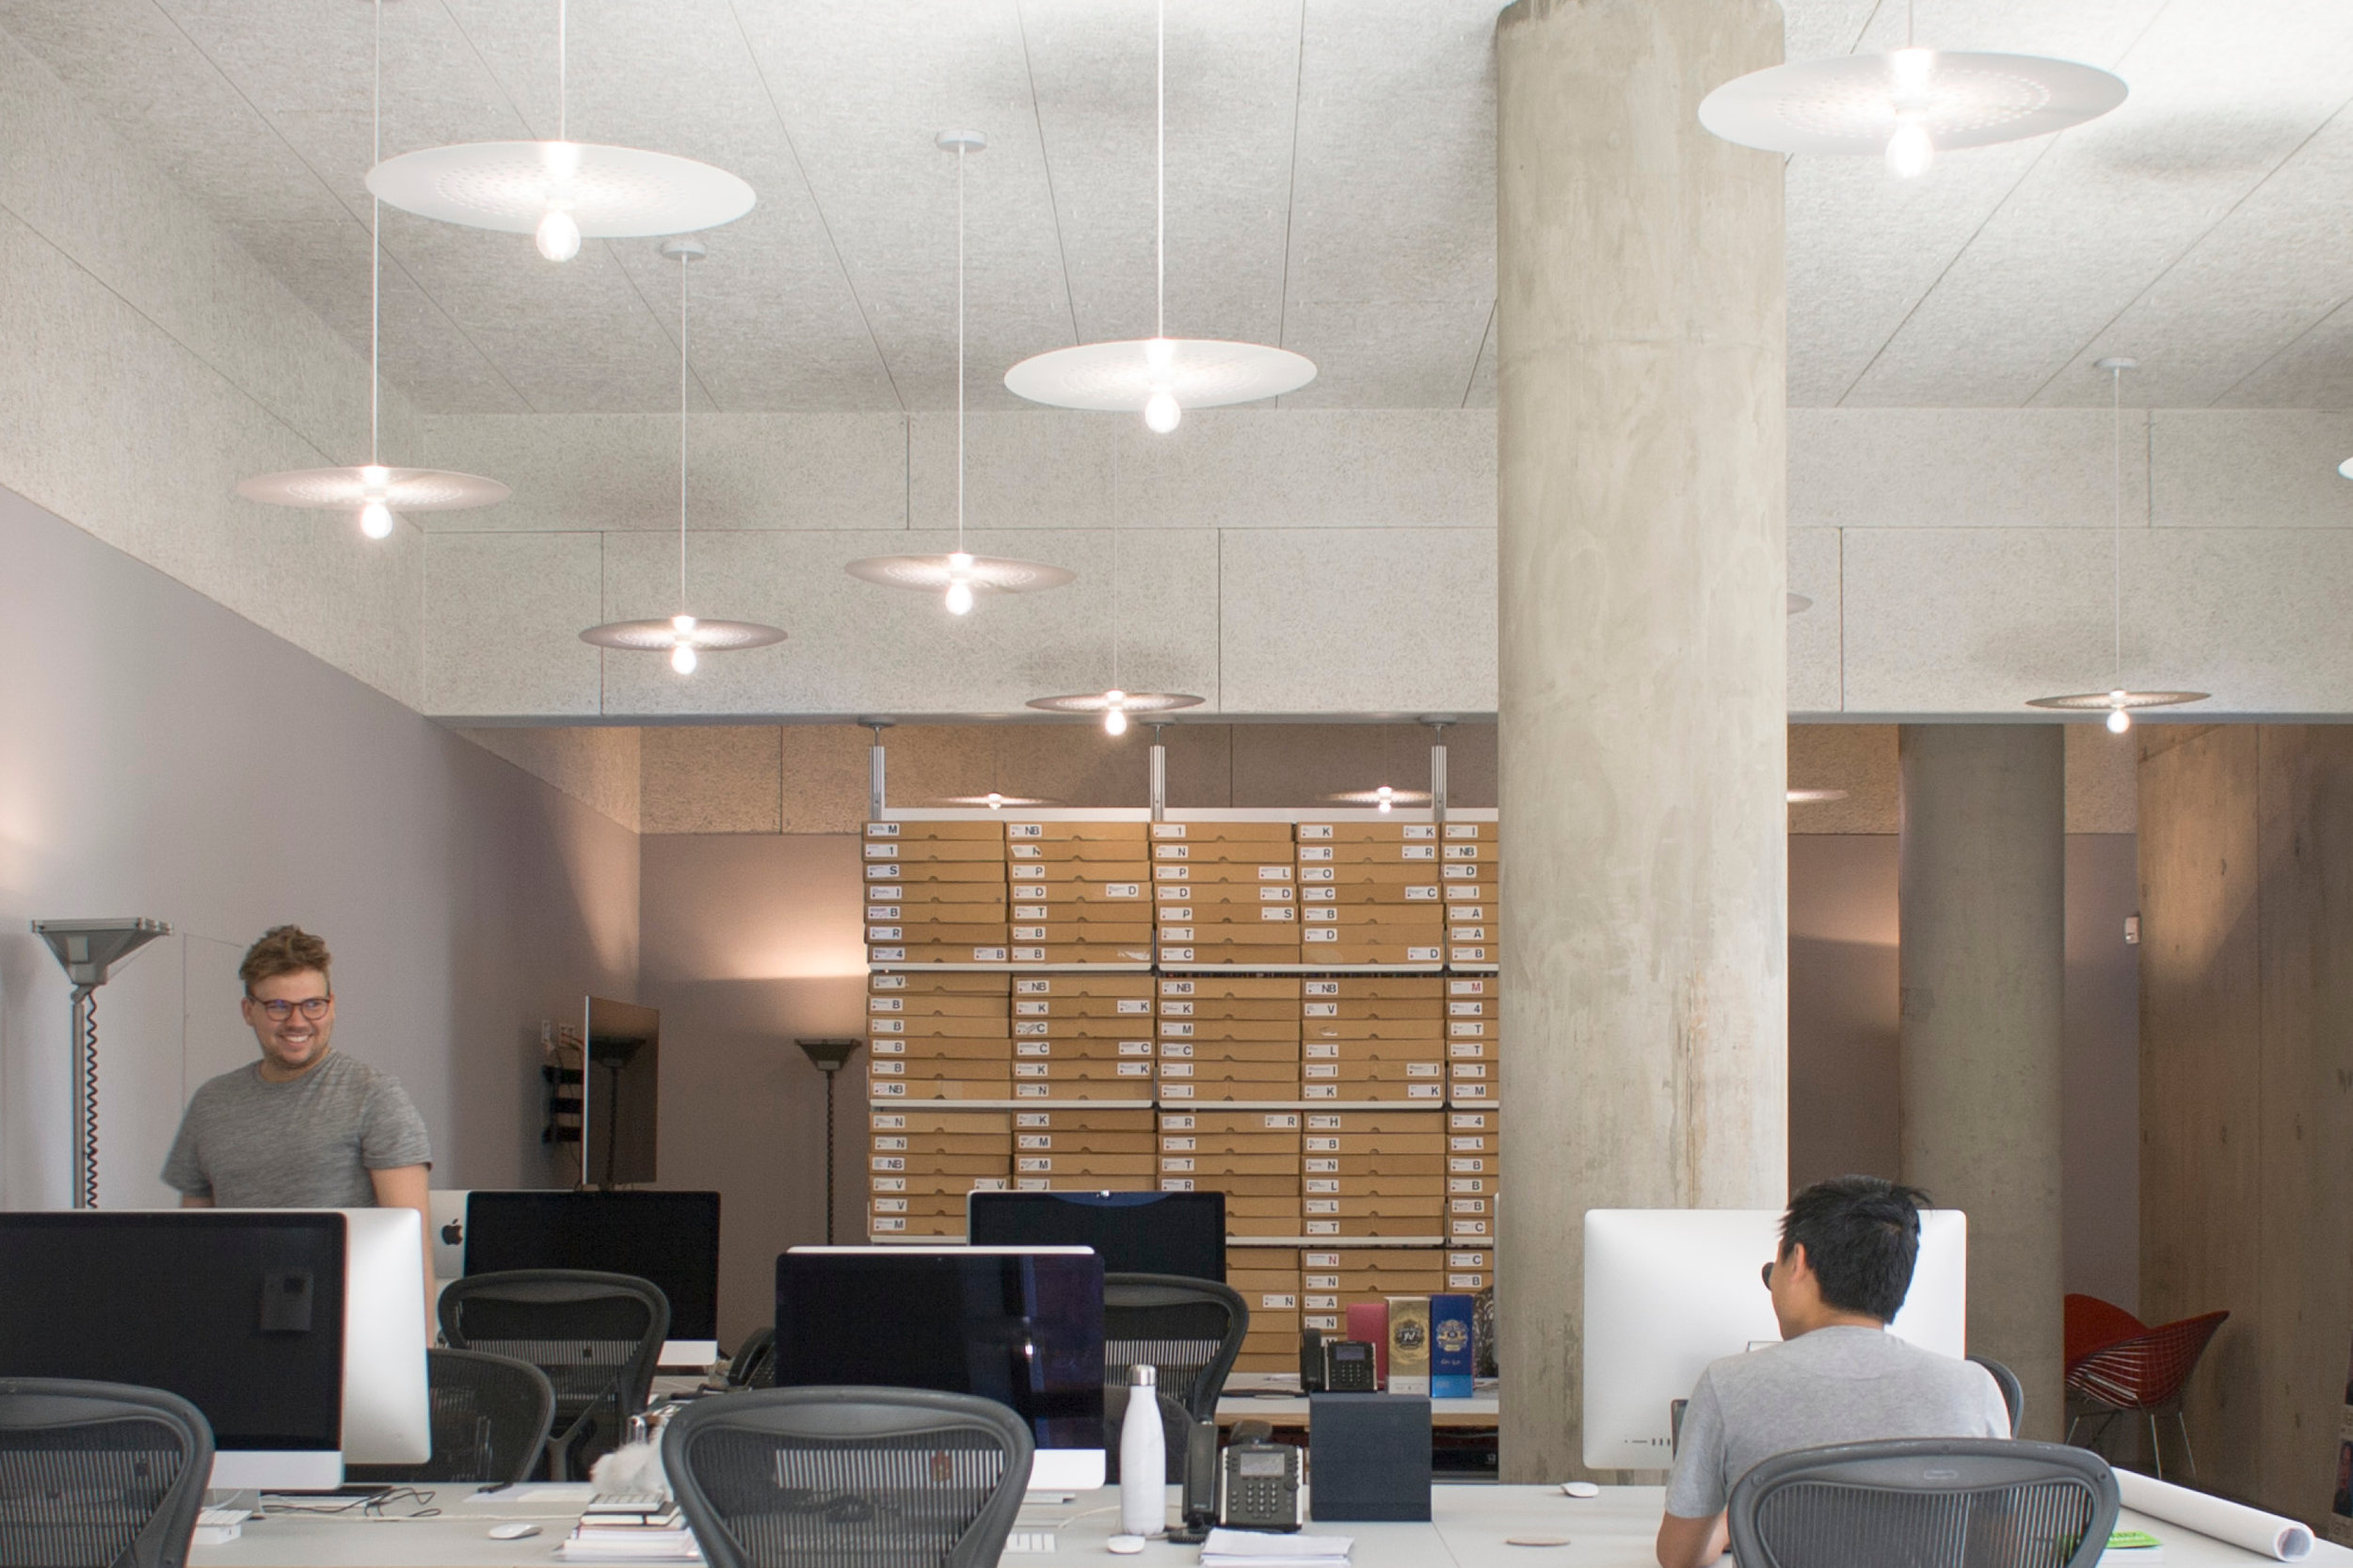 White Circular Superlight Pendants Suspended from Ceiling in Office